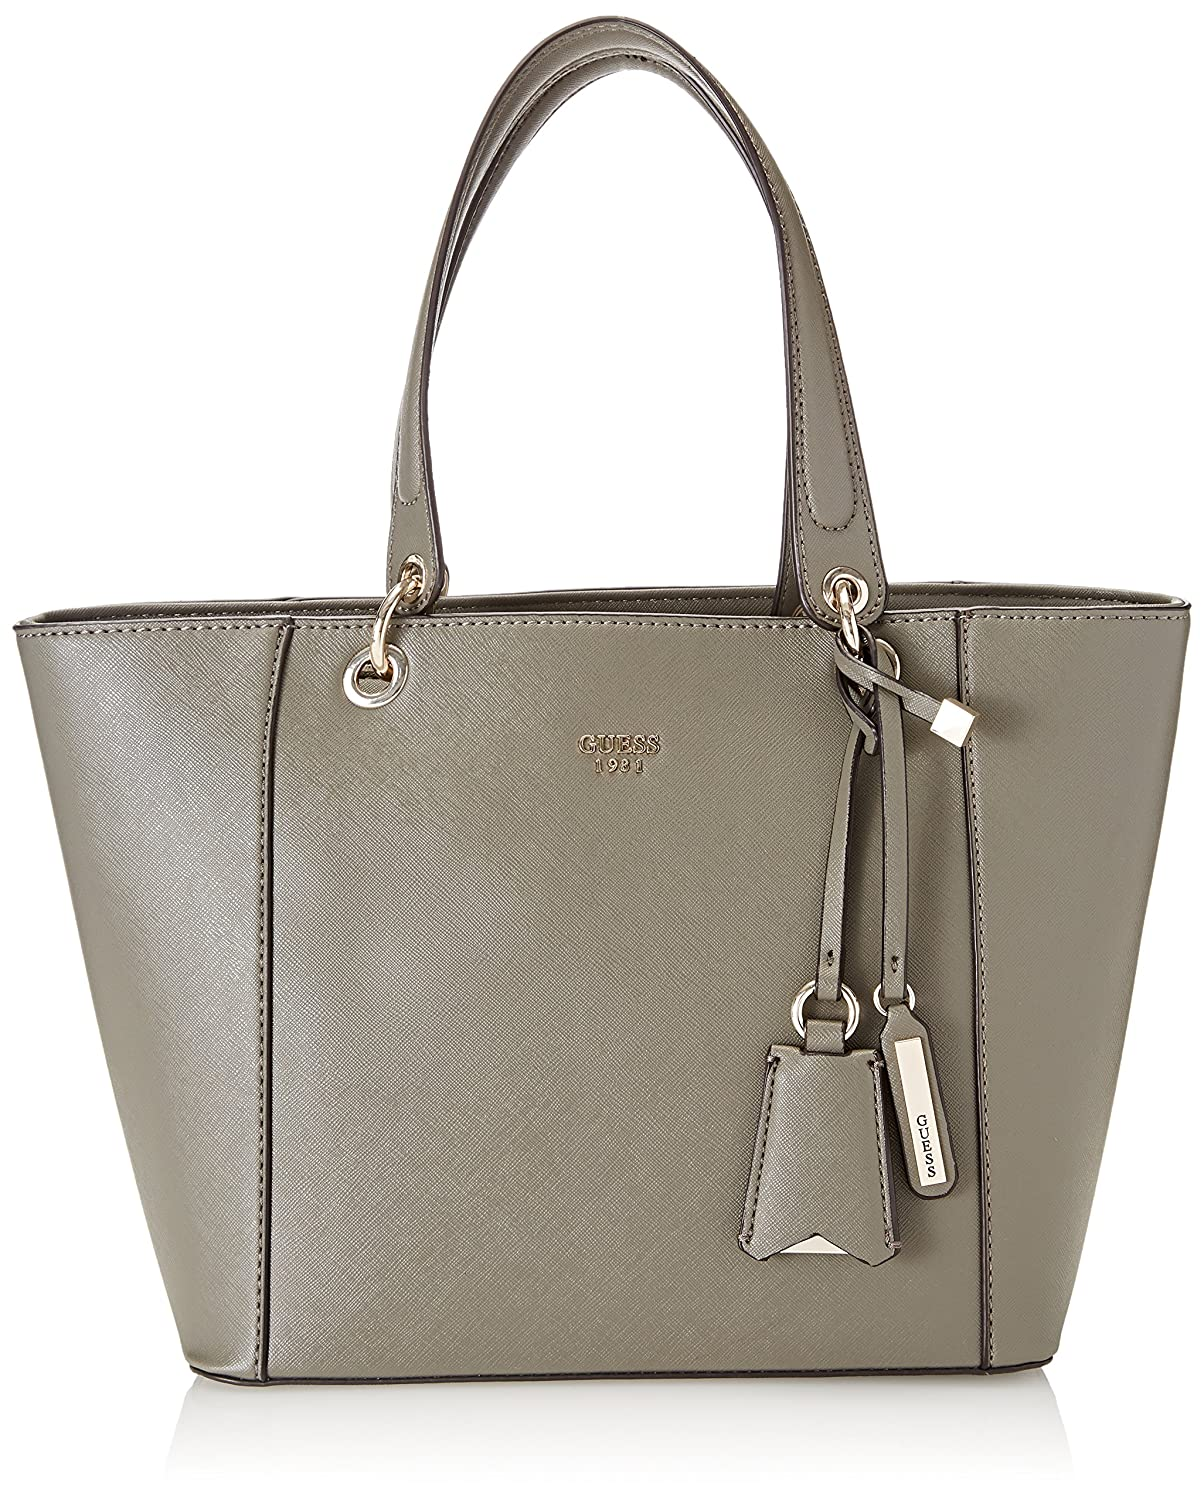 Guess hwvg6422150 amazon shoes grigio